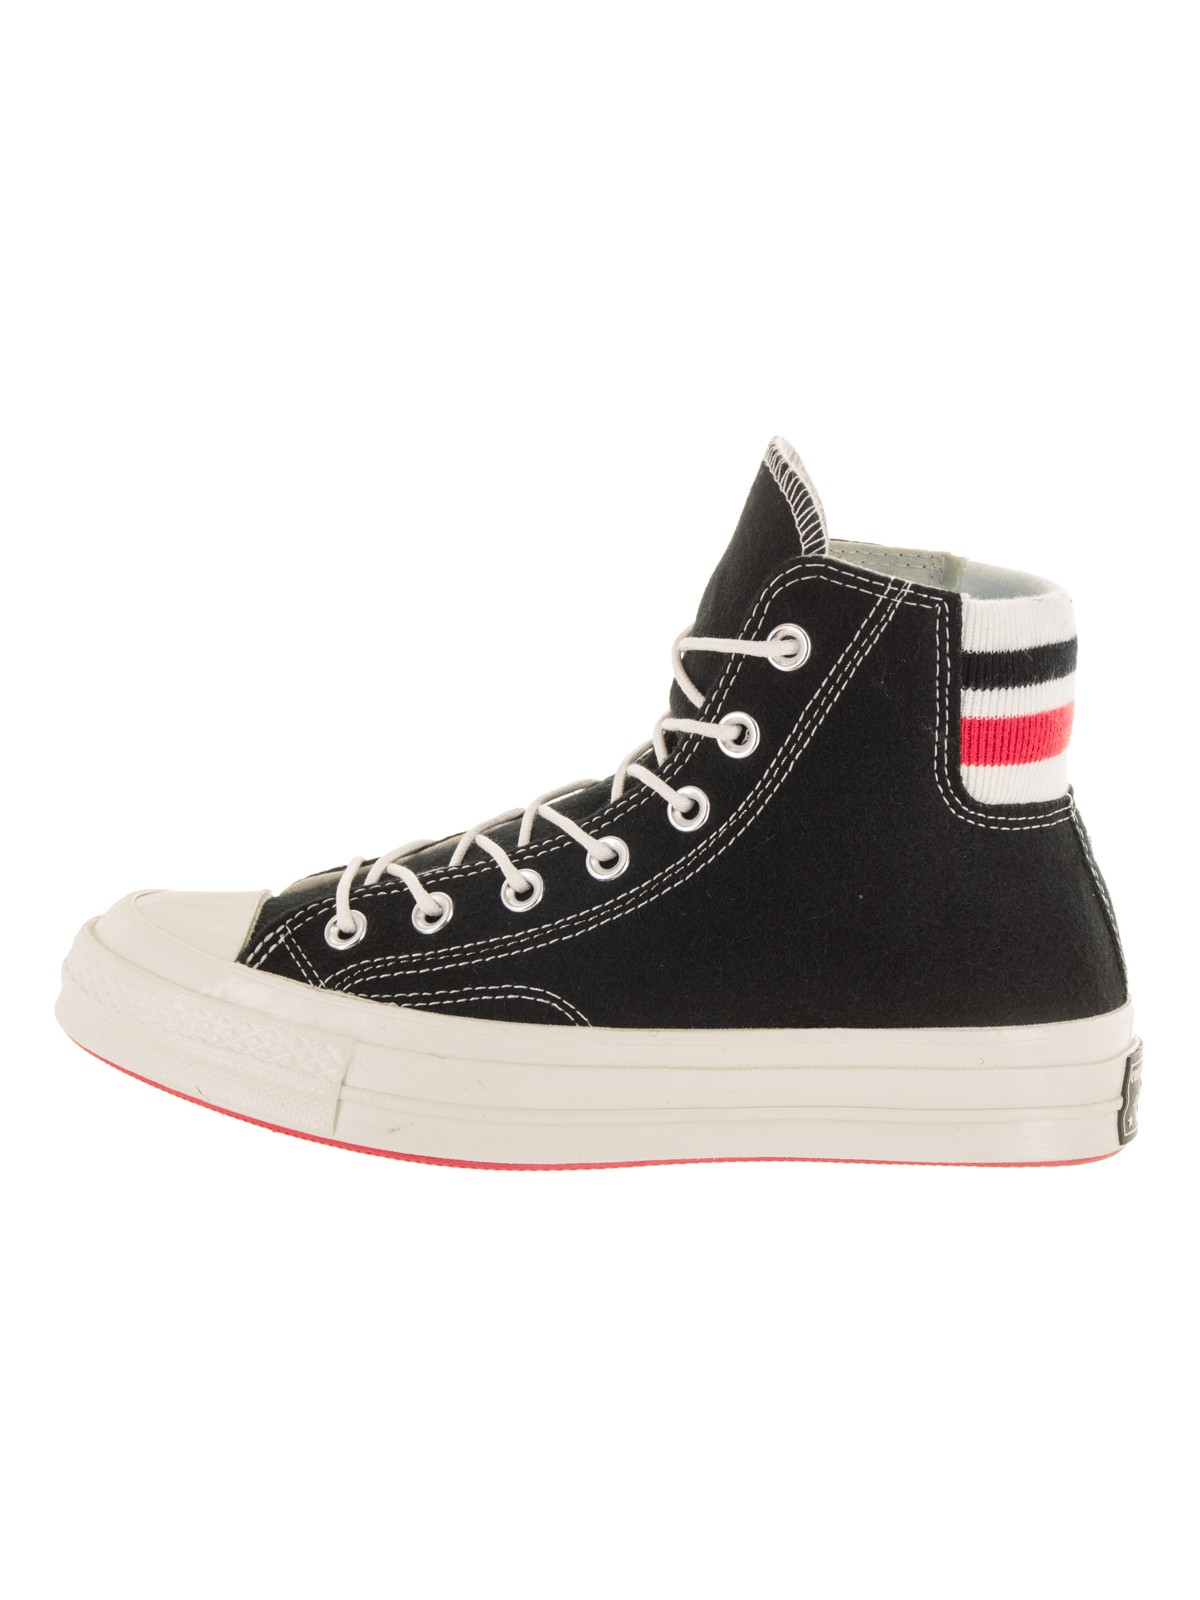 c937b08fc6a Converse Unisex Chuck Taylor All Star 70 Hi Basketball Shoe